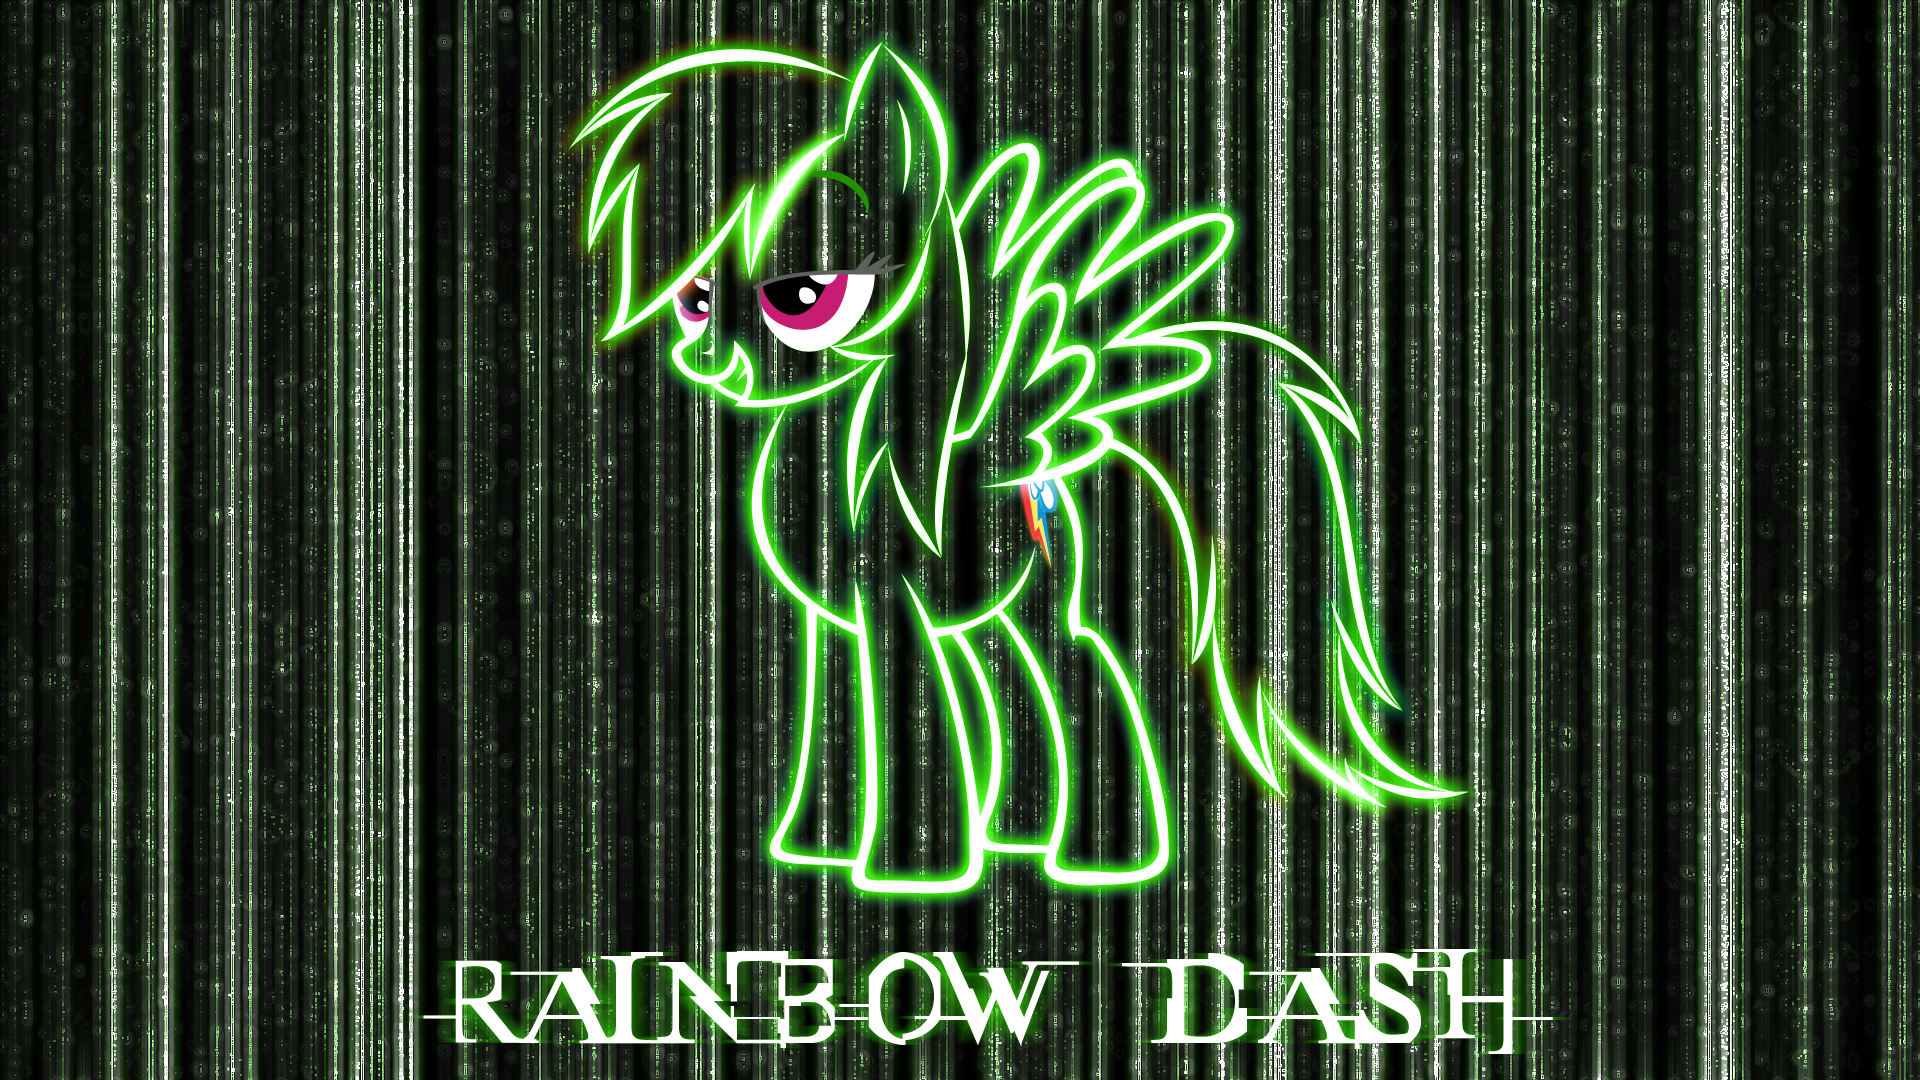 rainbow_dash_matrix_style_wallpaper_by_bluedragonhans-d4kiwjb